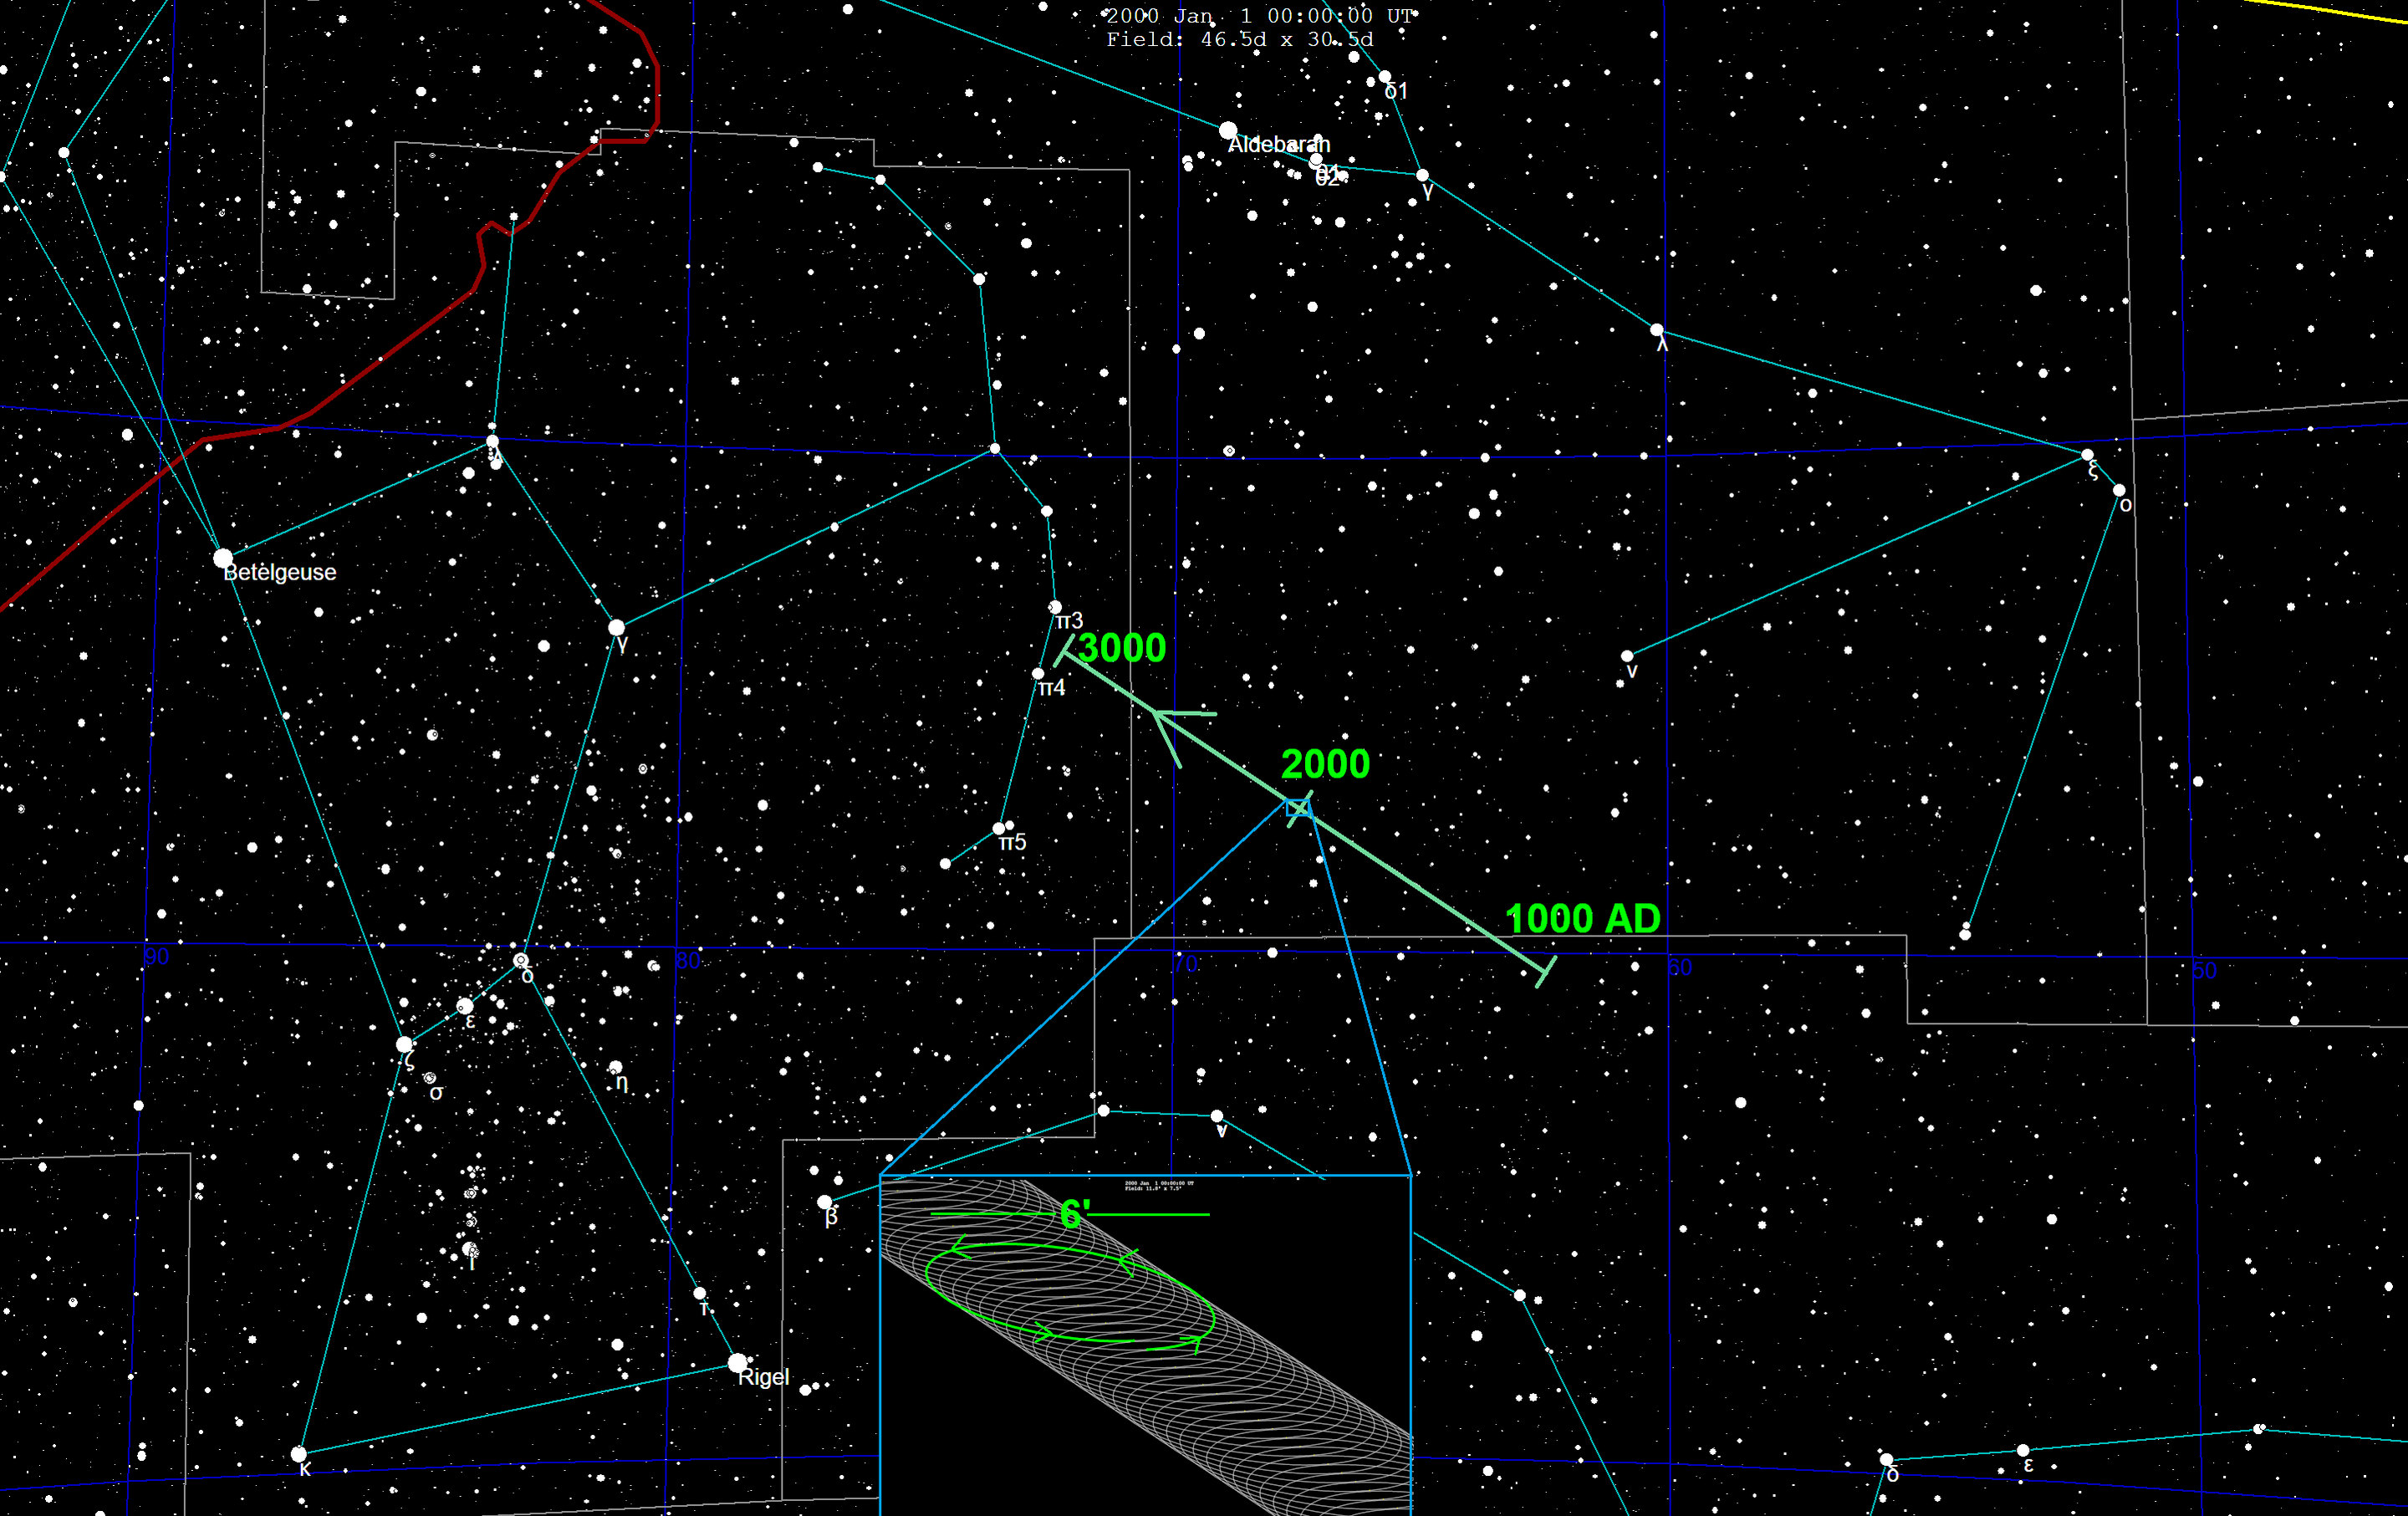 2880px-Planet_nine_path_in_orion2.png